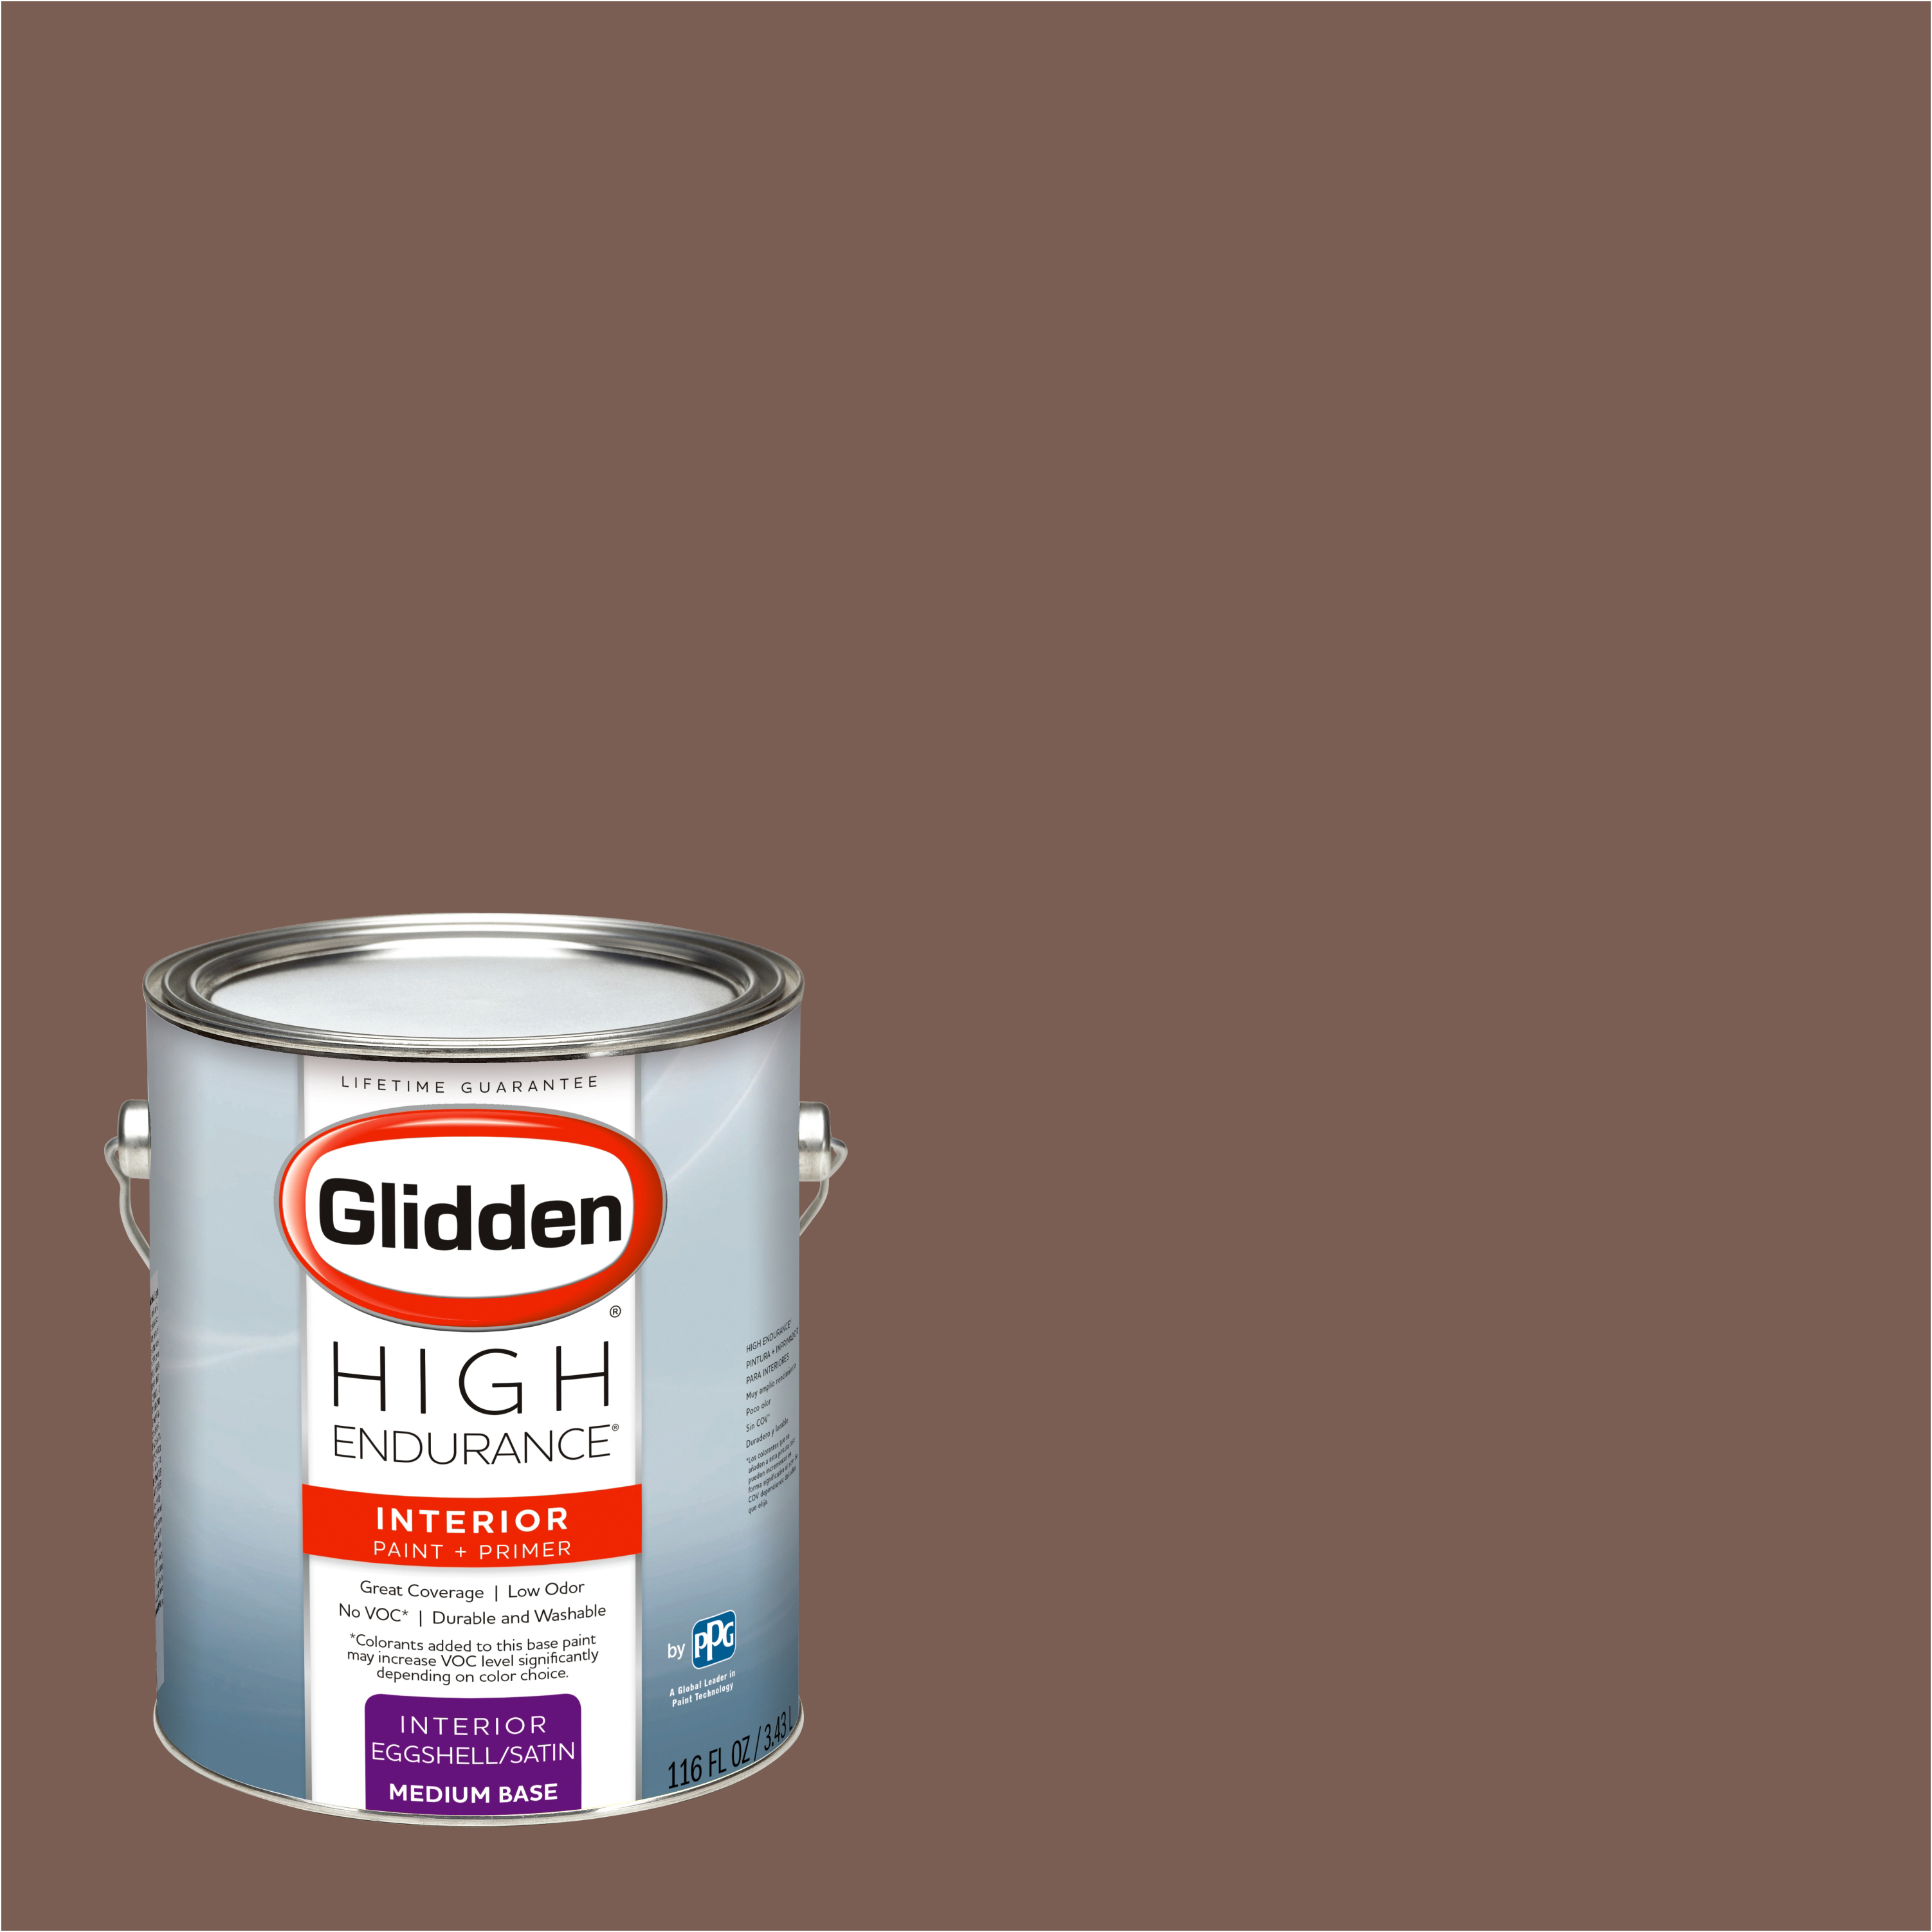 Glidden High Endurance, Interior Paint and Primer, Spicewood Brown, #50YR 13/139